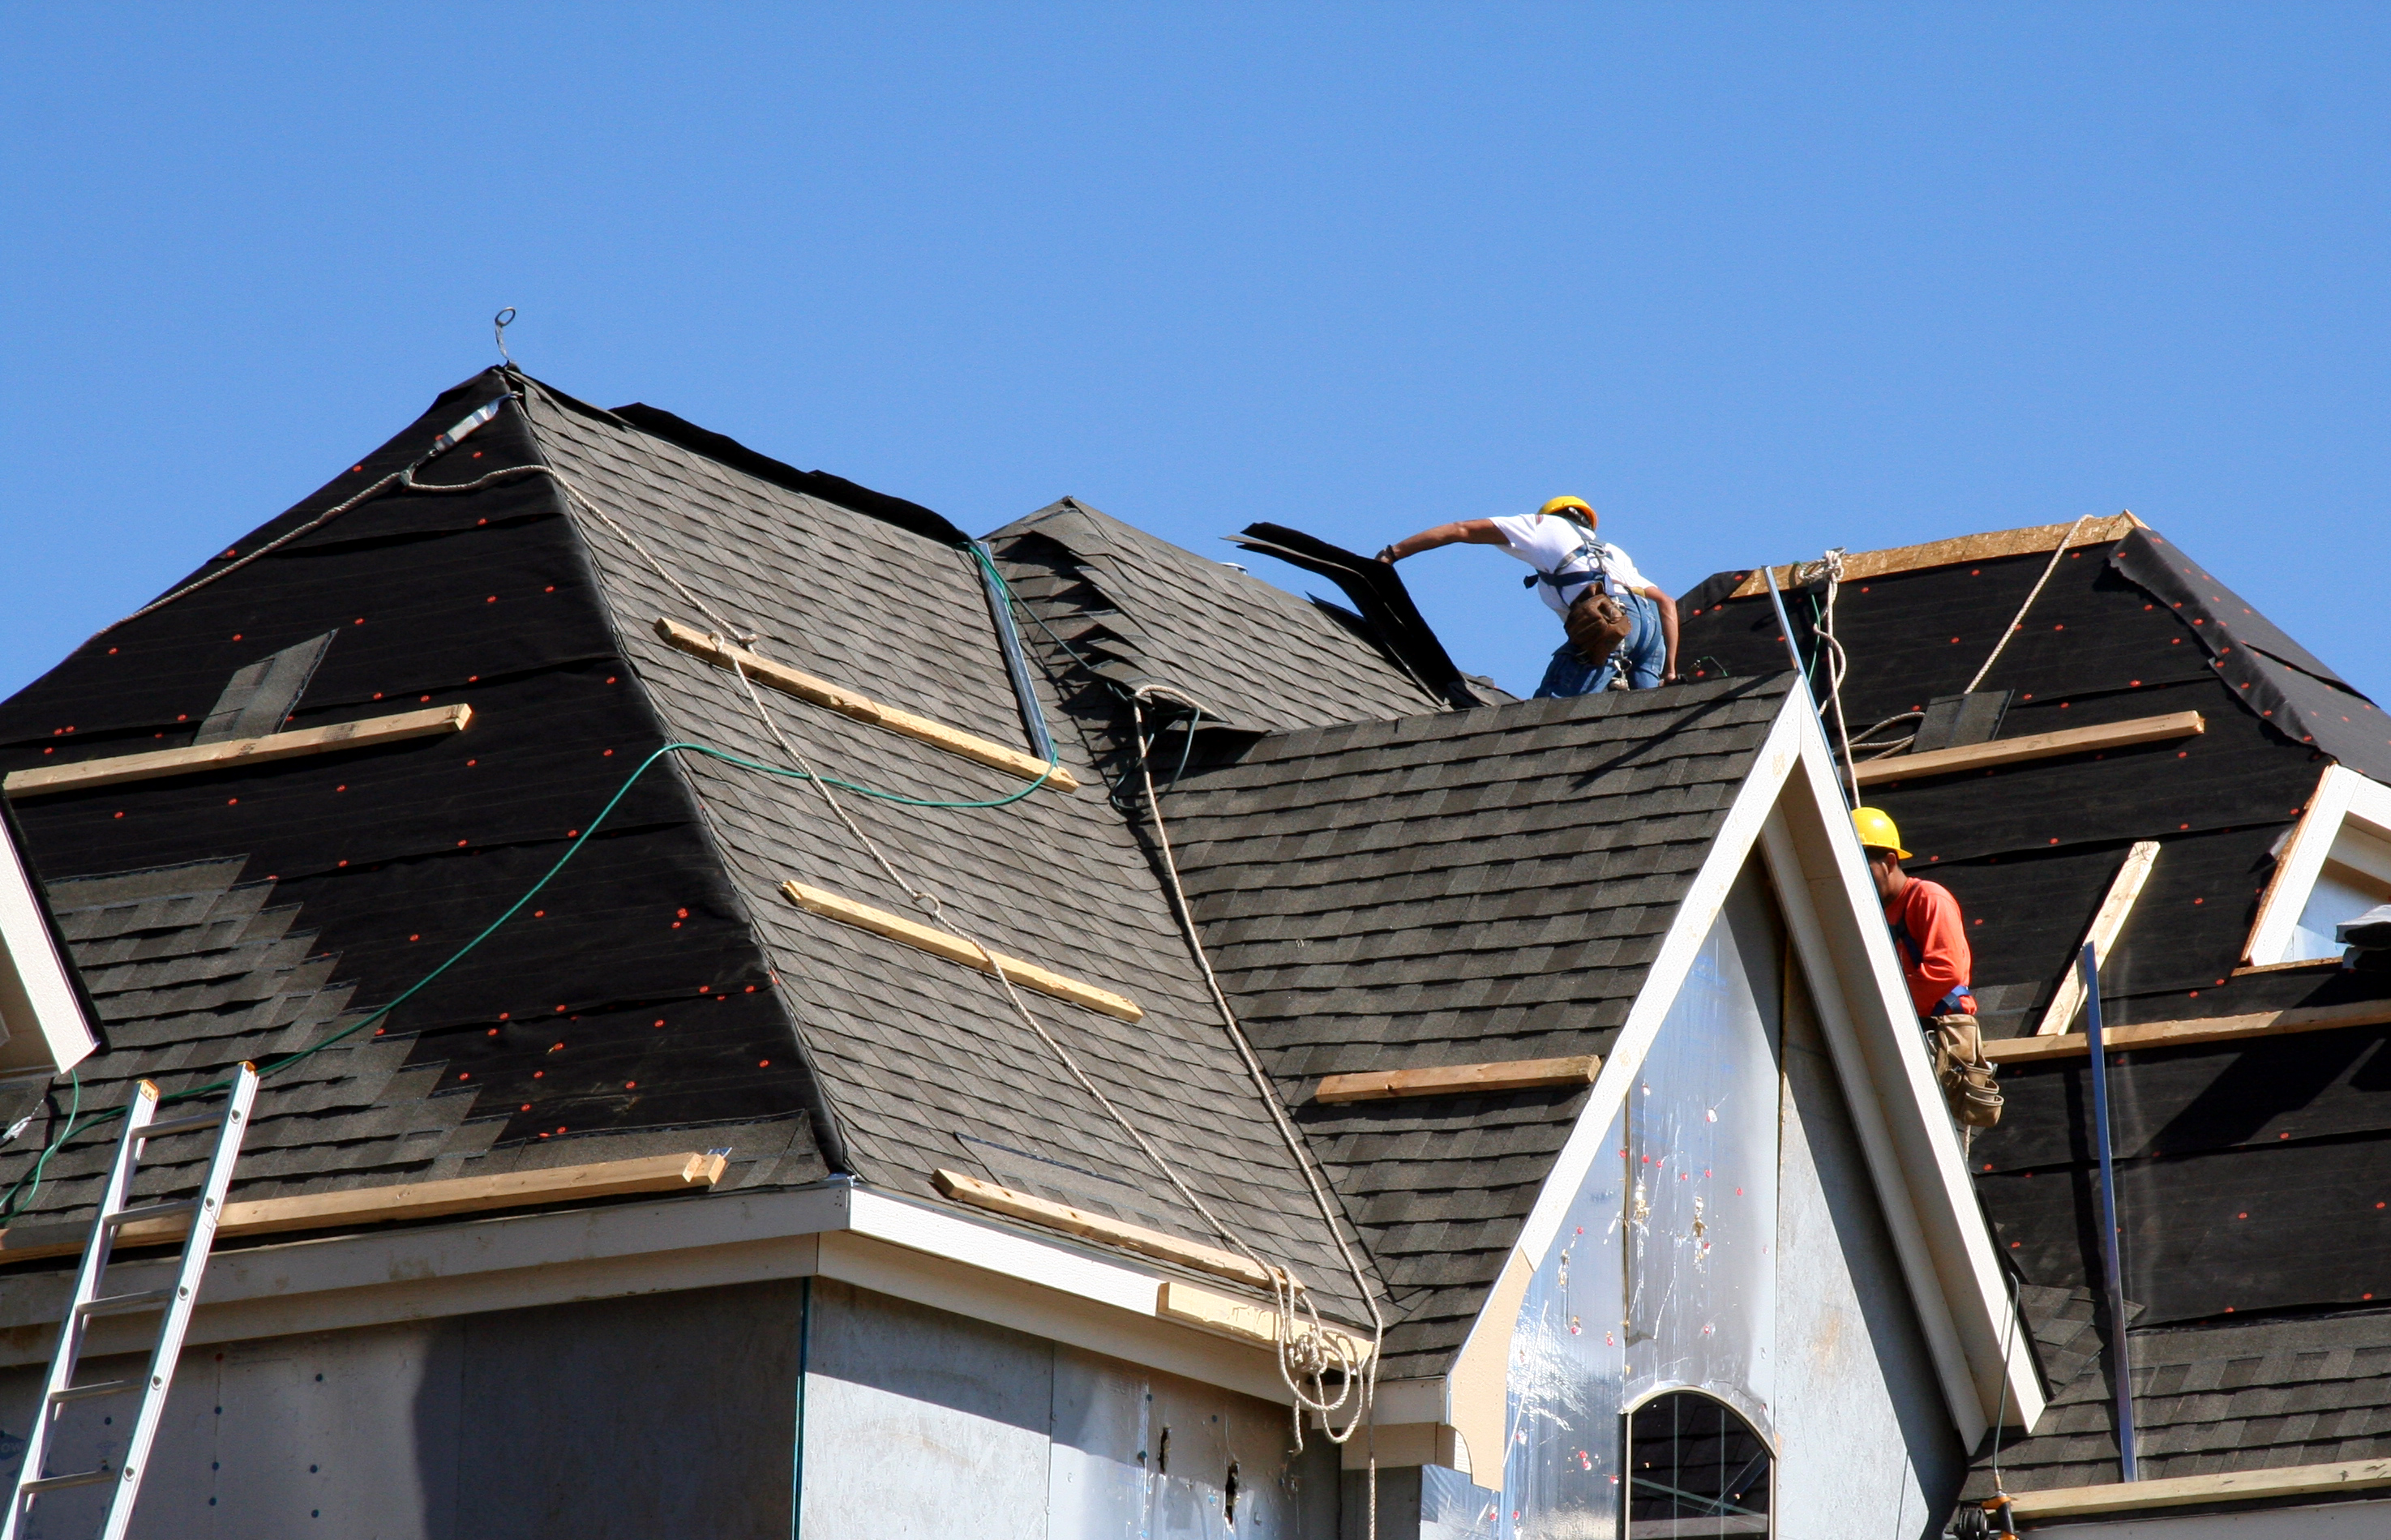 Roof Loans Financing Your Roof With A Personal Loan Nerdwallet